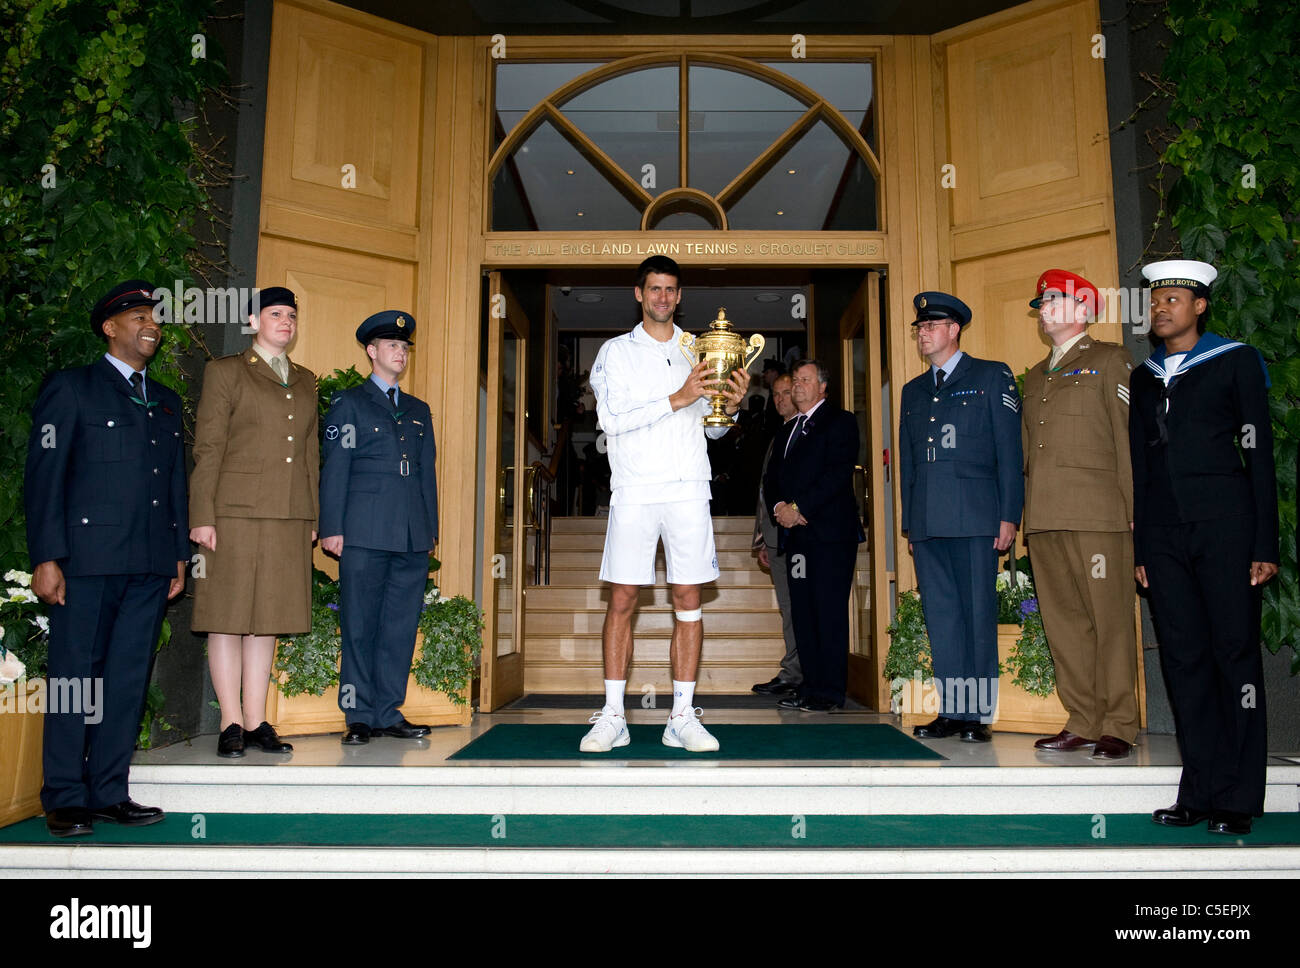 Novak Djokovic (SRB) on the club house front steps with the trophy after victory at the 2011 Wimbledon Tennis Championships - Stock Image